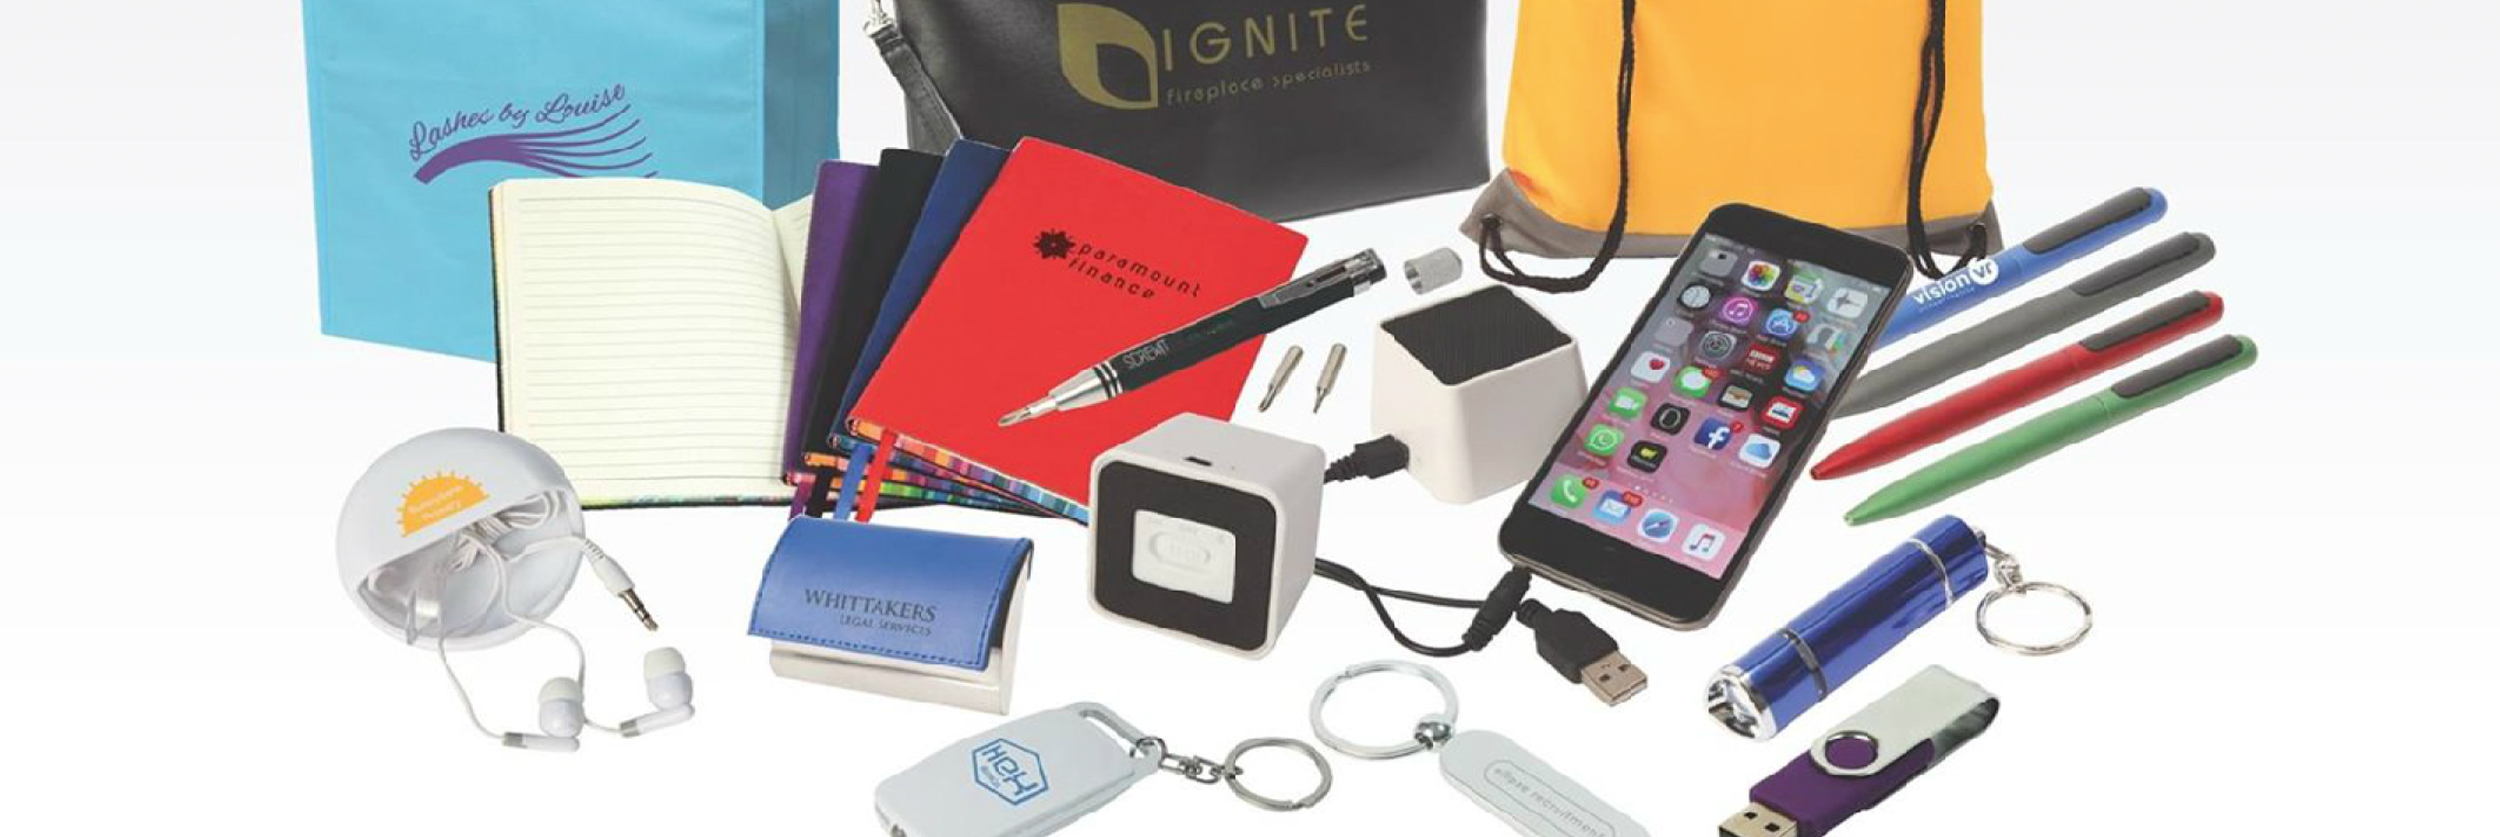 ILM Designs - Promotional products